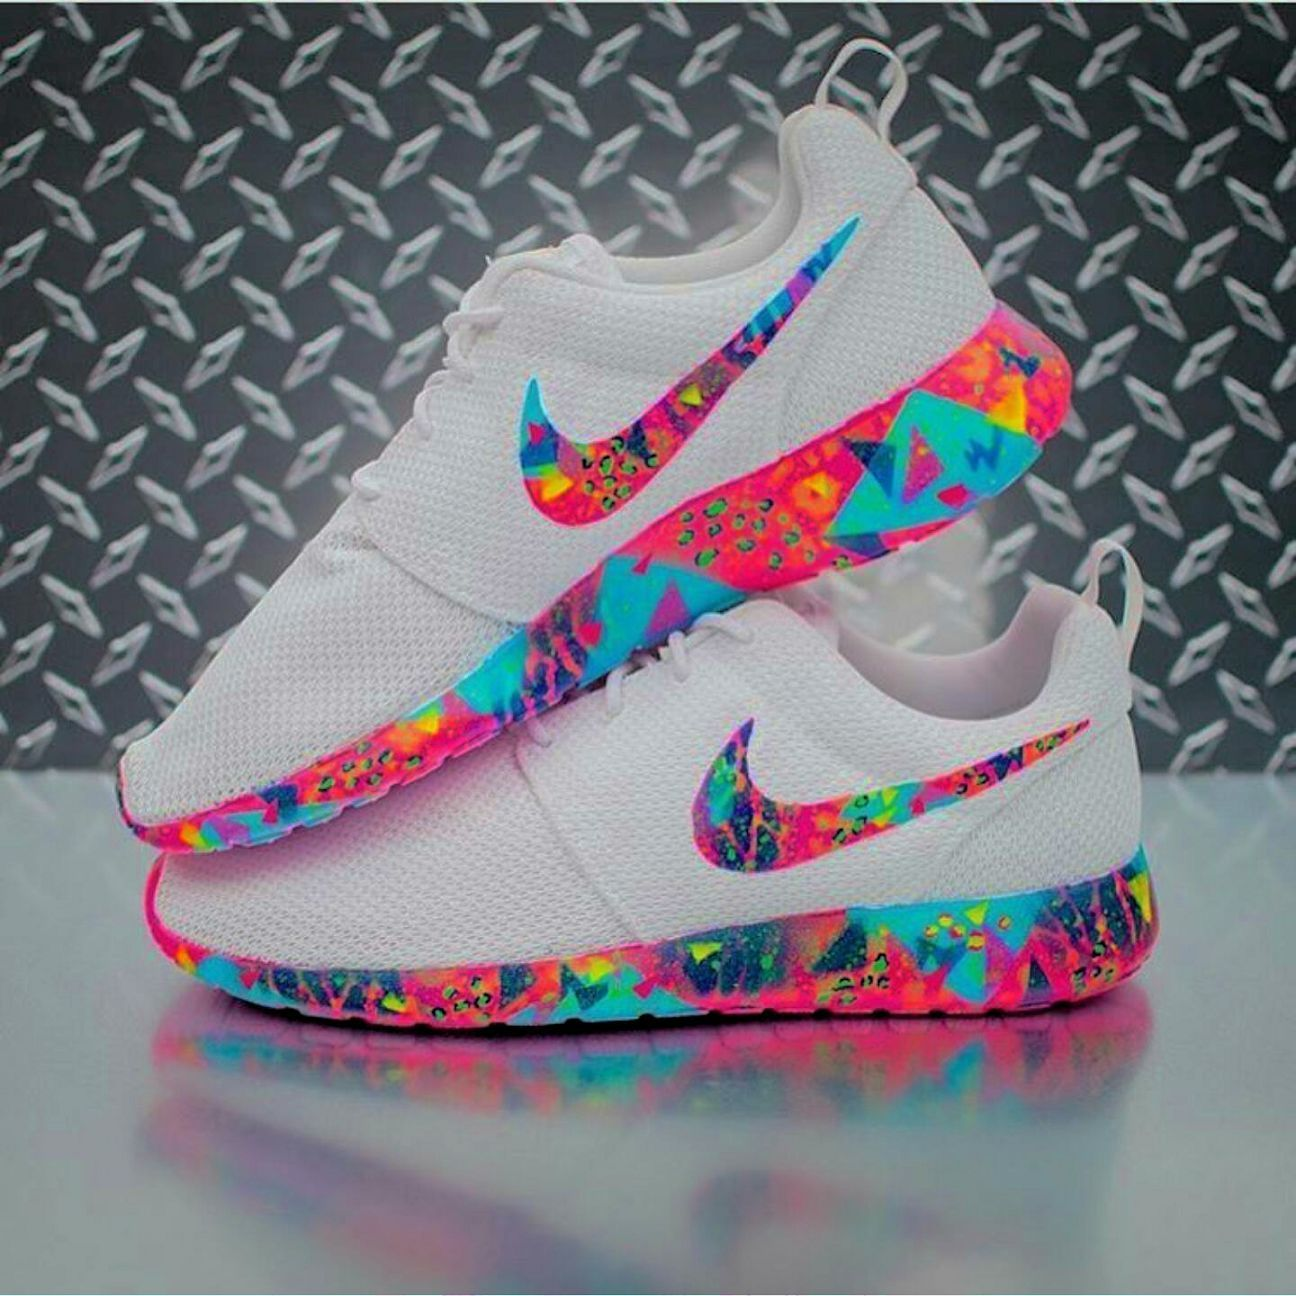 Rainbow VaporMax Plus | Cute shoes, Shoes, Sneakers fashion